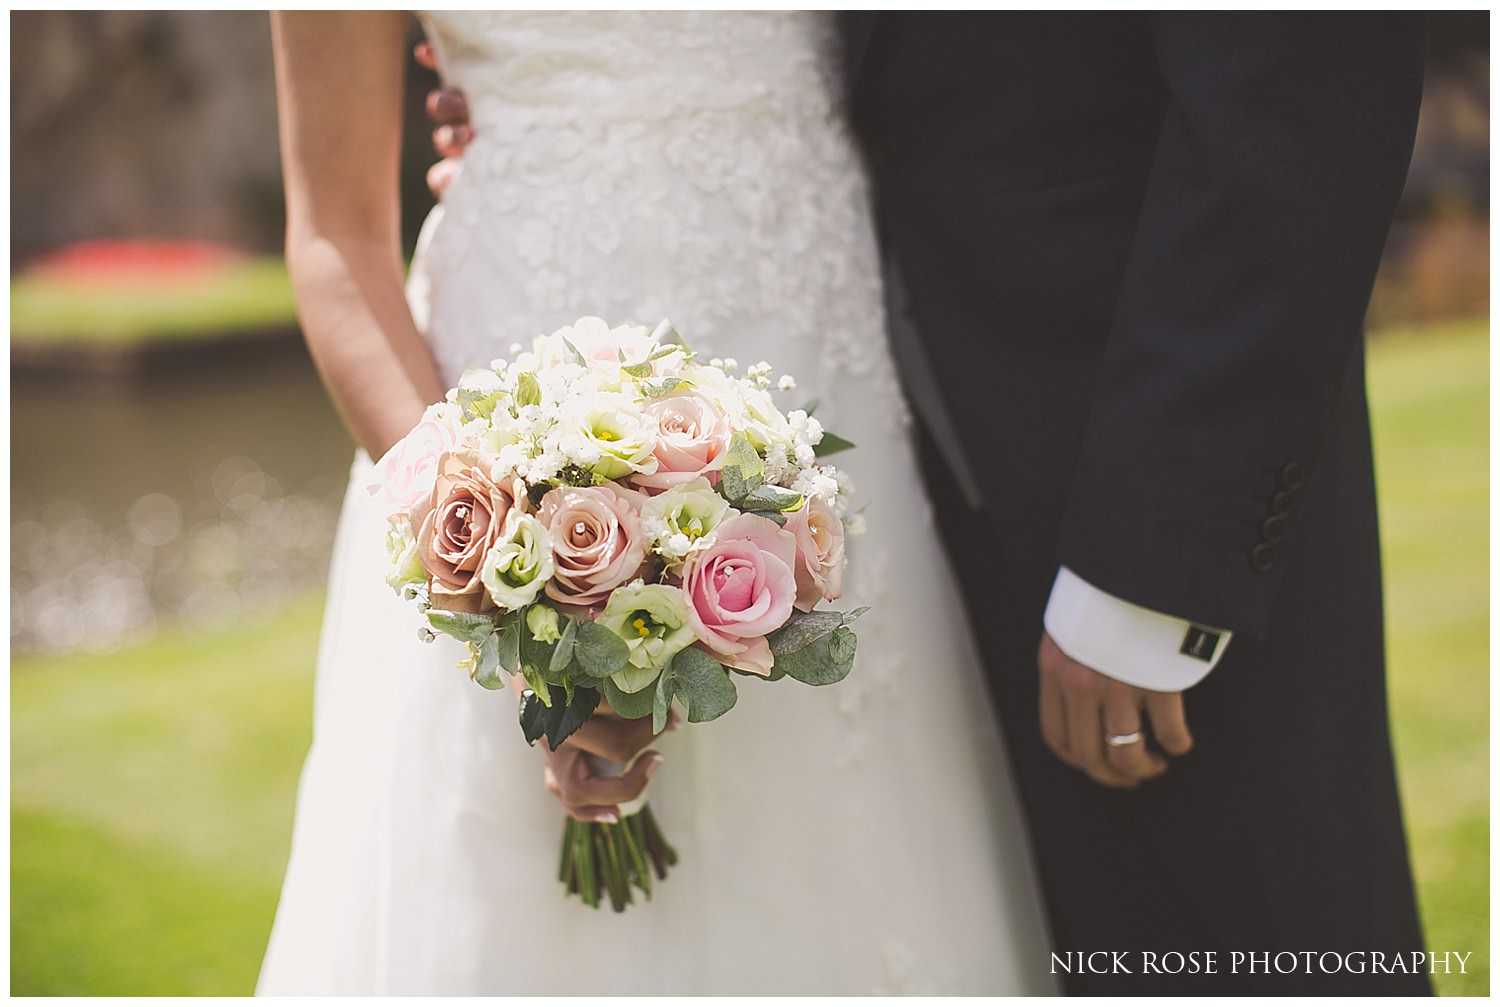 Bride and groom wedding detail photograph at Hever Castle Kent